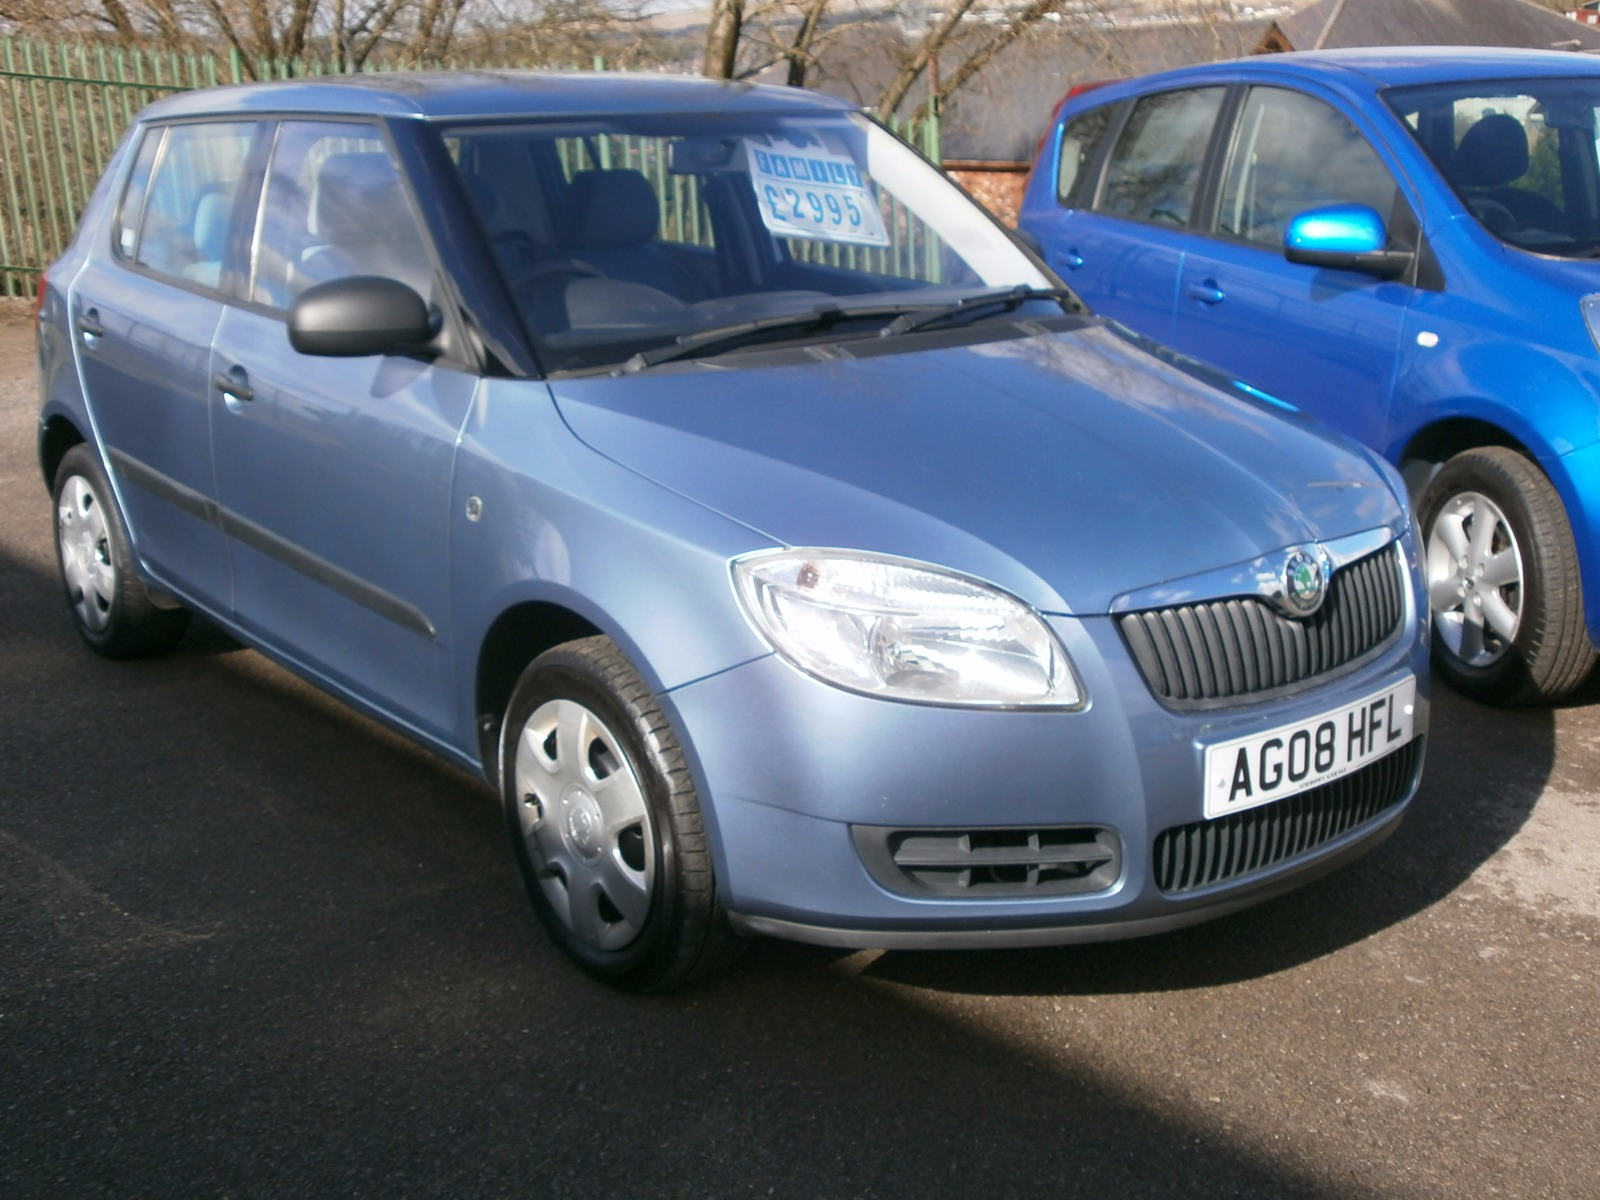 sirhowy garage skoda fabia 1 2 htp 1 70bhp. Black Bedroom Furniture Sets. Home Design Ideas